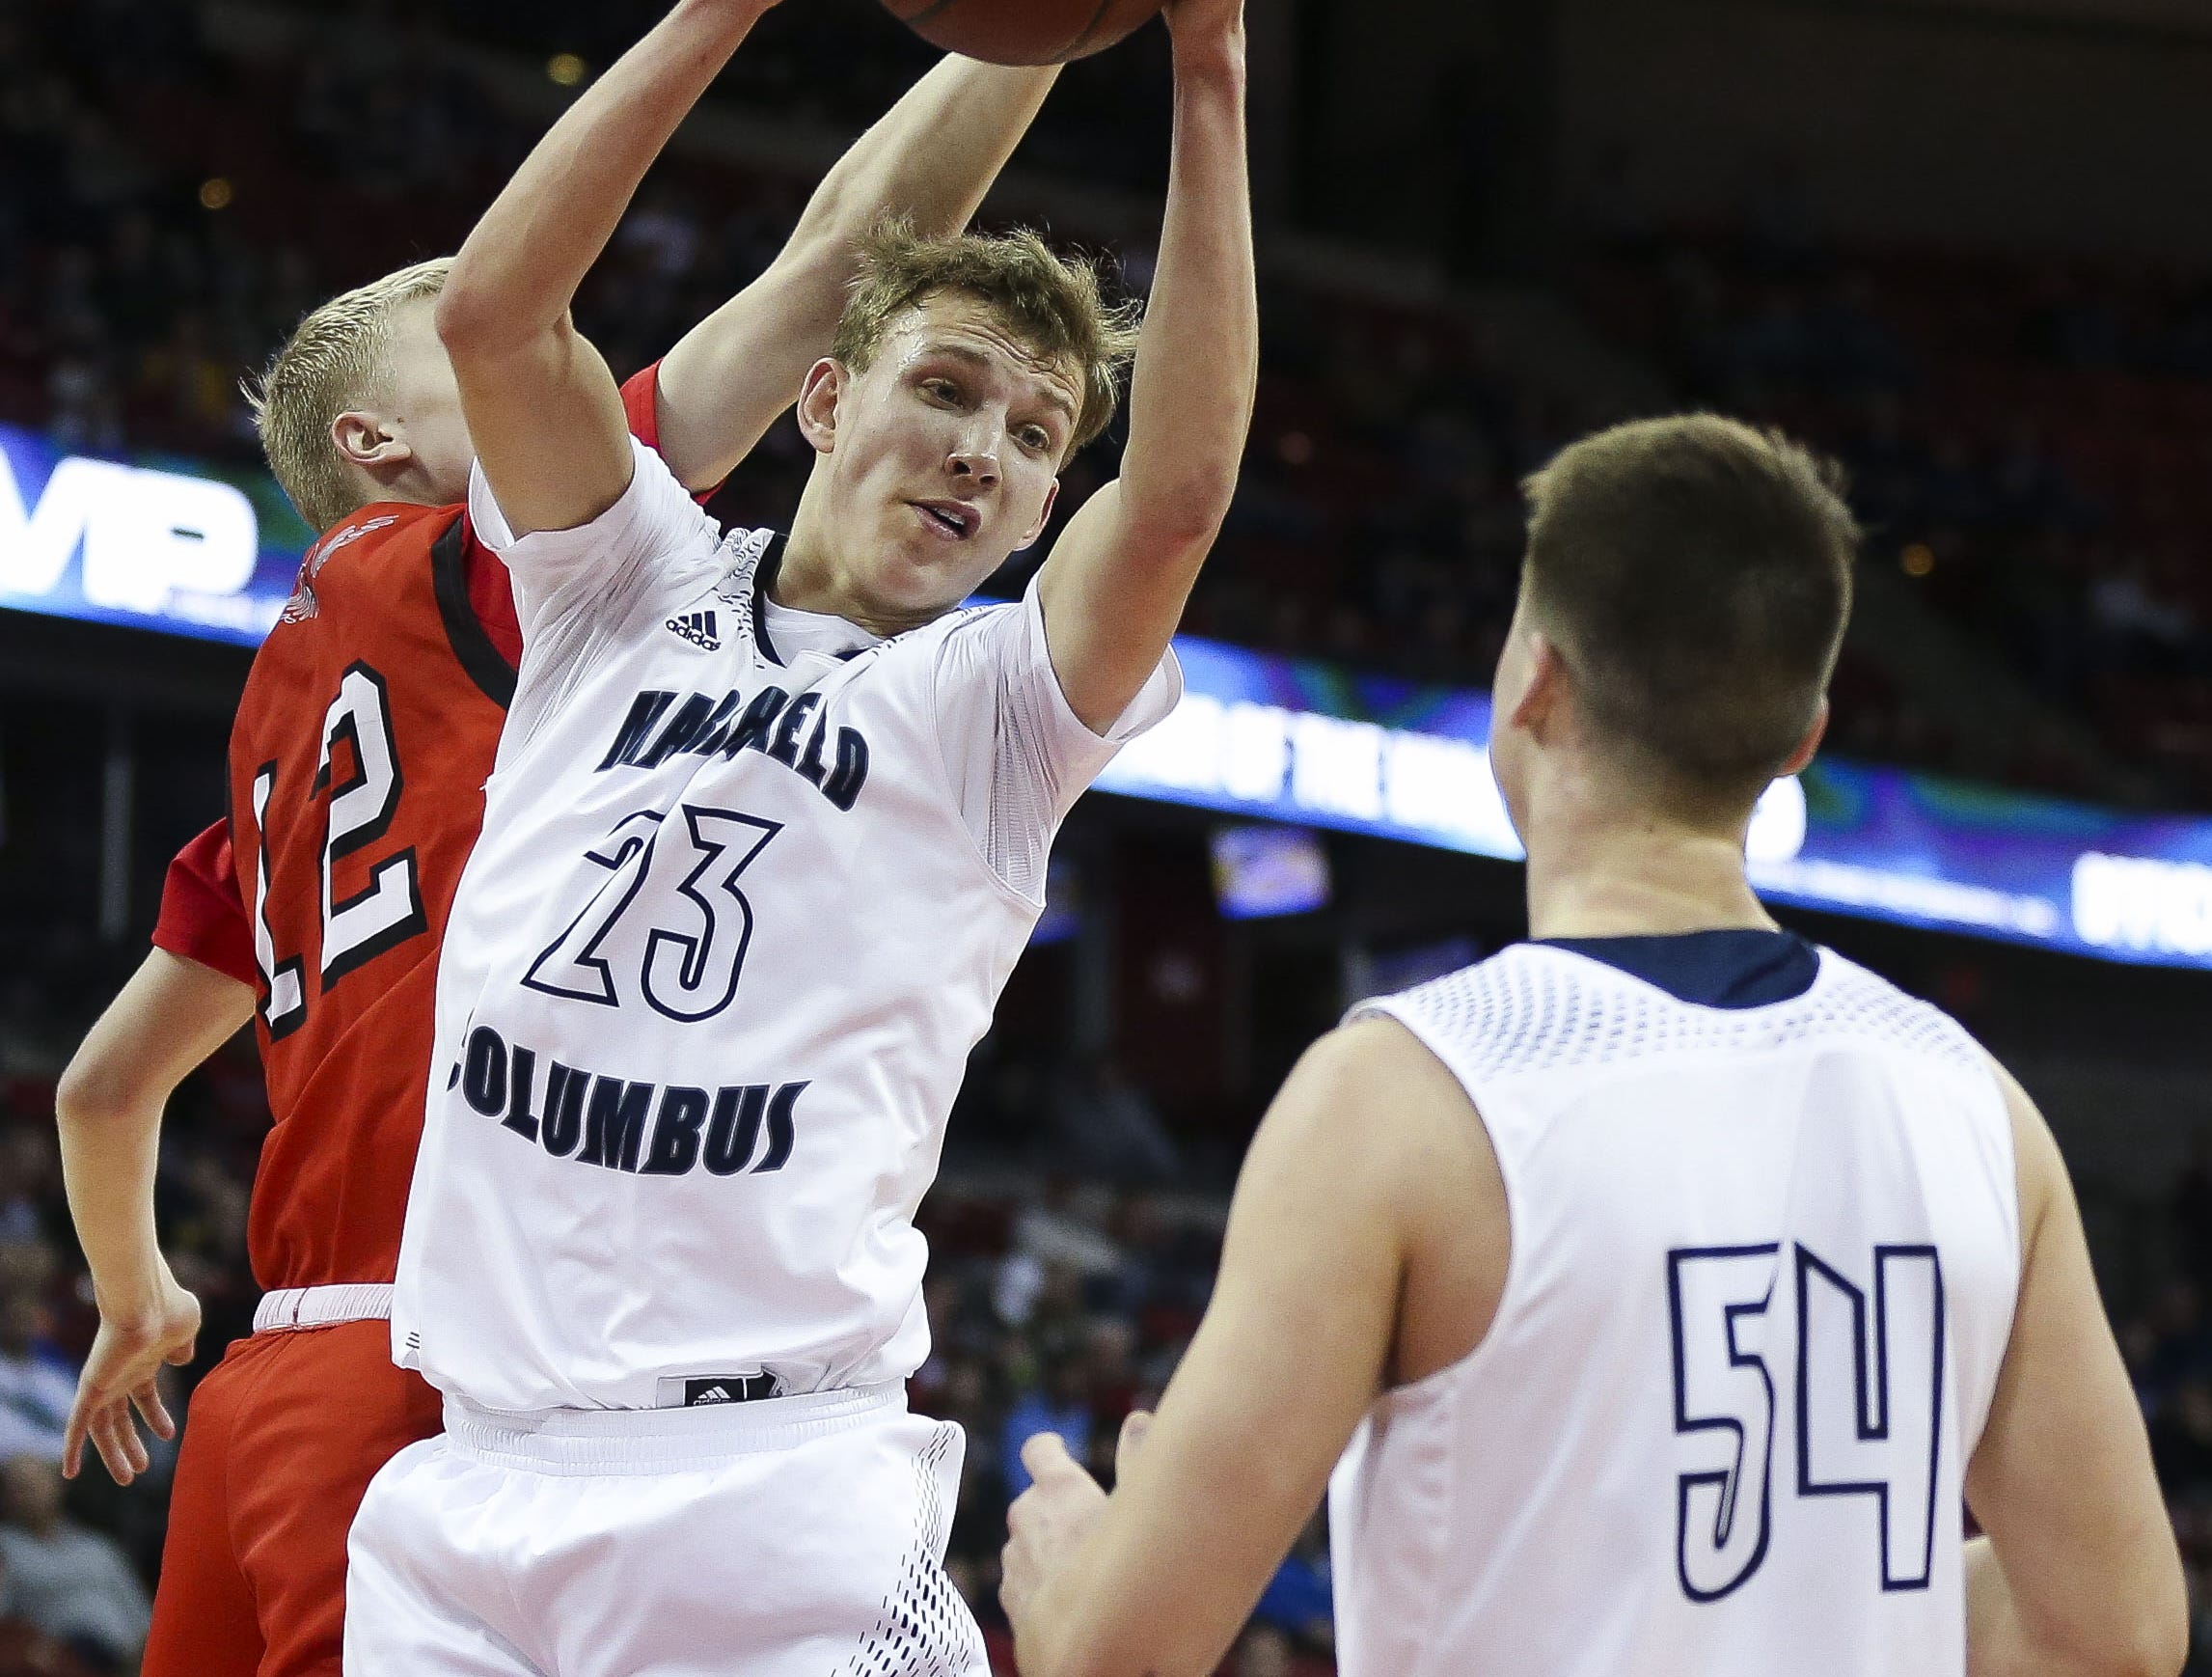 Columbus Catholic High School's Bryce Fuerlinger (23) pulls down a rebound against Bangor High School in a Division 5 boys basketball state semifinal on Friday, March 15, 2019, at the Kohl Center in Madison, Wis. Columbus Catholic won the game, 69-66, on a buzzer-beater 3-pointer. Tork Mason/USA TODAY NETWORK-Wisconsin